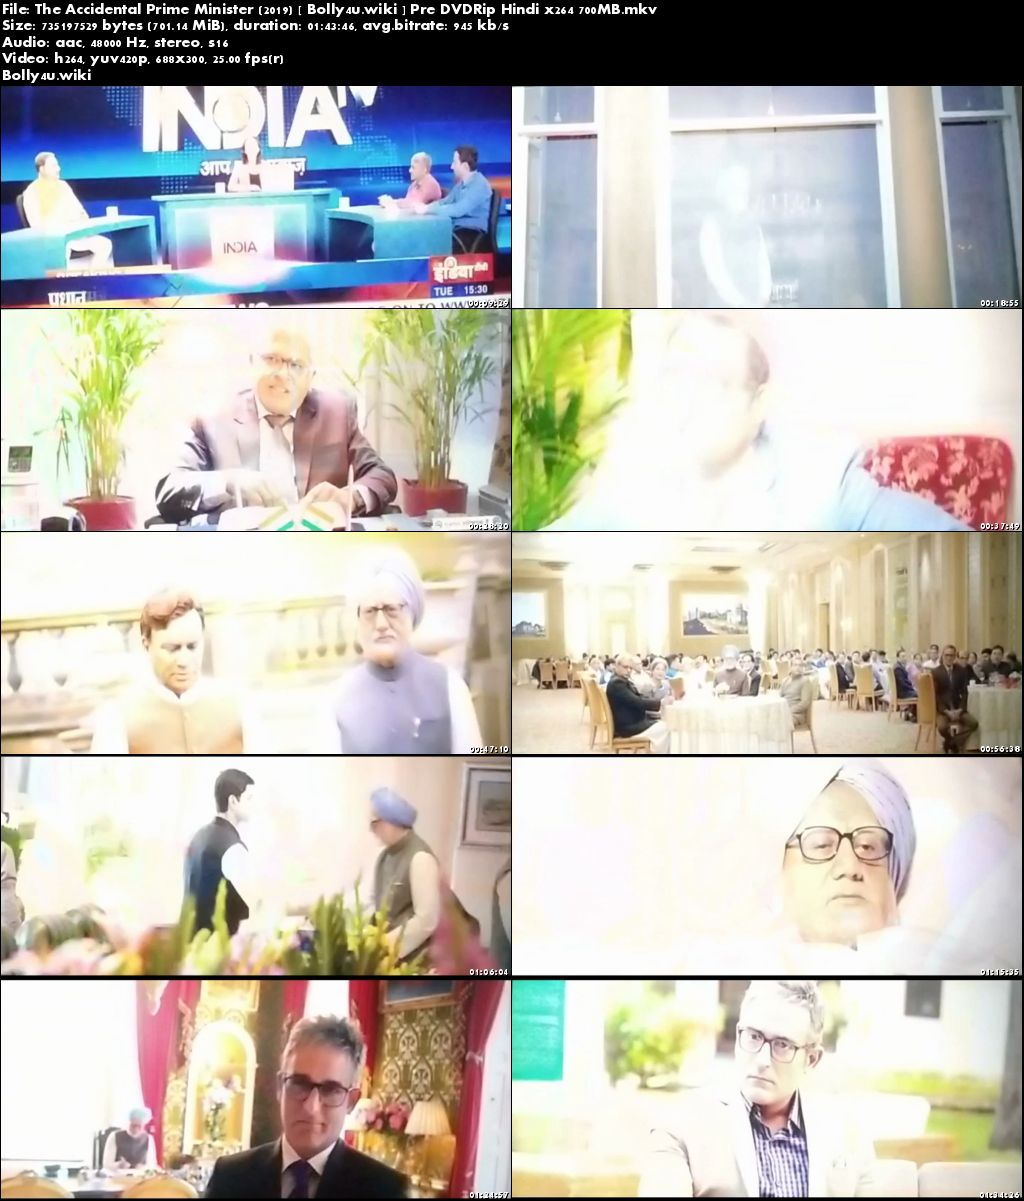 The Accidental Prime Minister 2019 Pre DVDRip 700MB Hindi x264